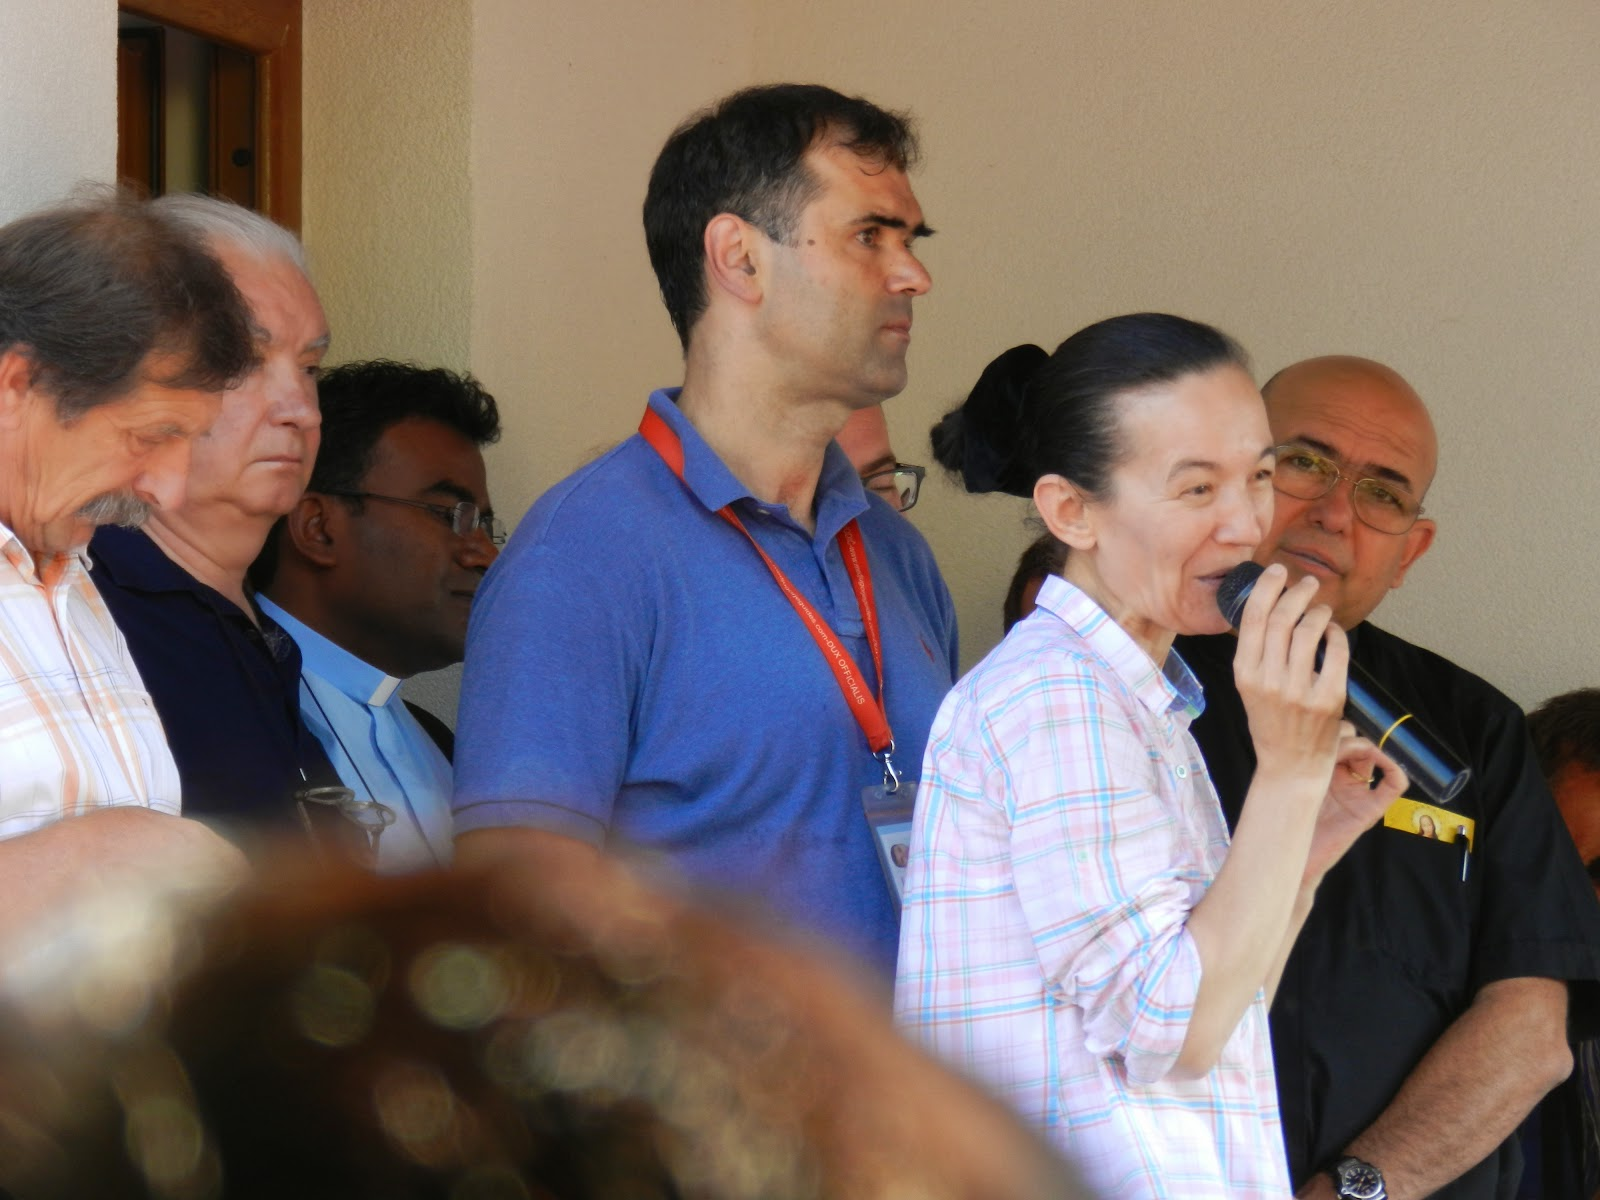 An image of the Medjugorje visionary Vicka in 2014, speaking to pilgrims.